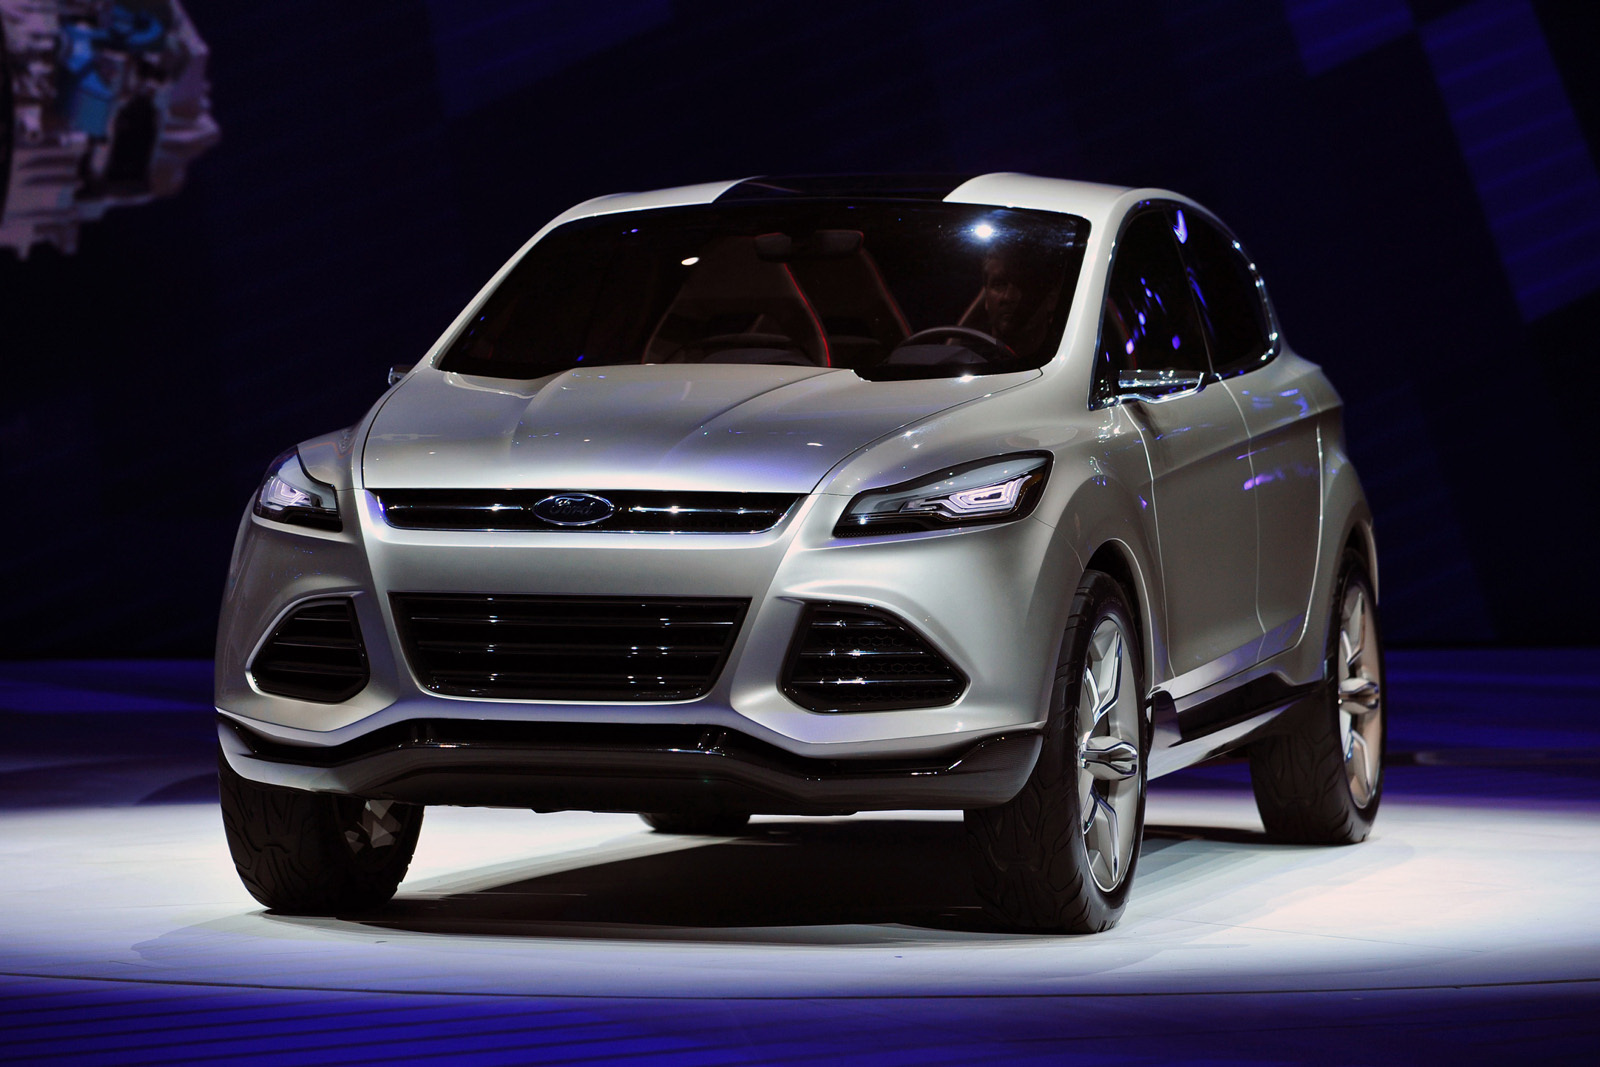 2013 Ford Escape 13 Ford to unveil All New 2013 Escape with 1.6 liter and 2.0 liter EcoBoost Engines at LA Auto Show